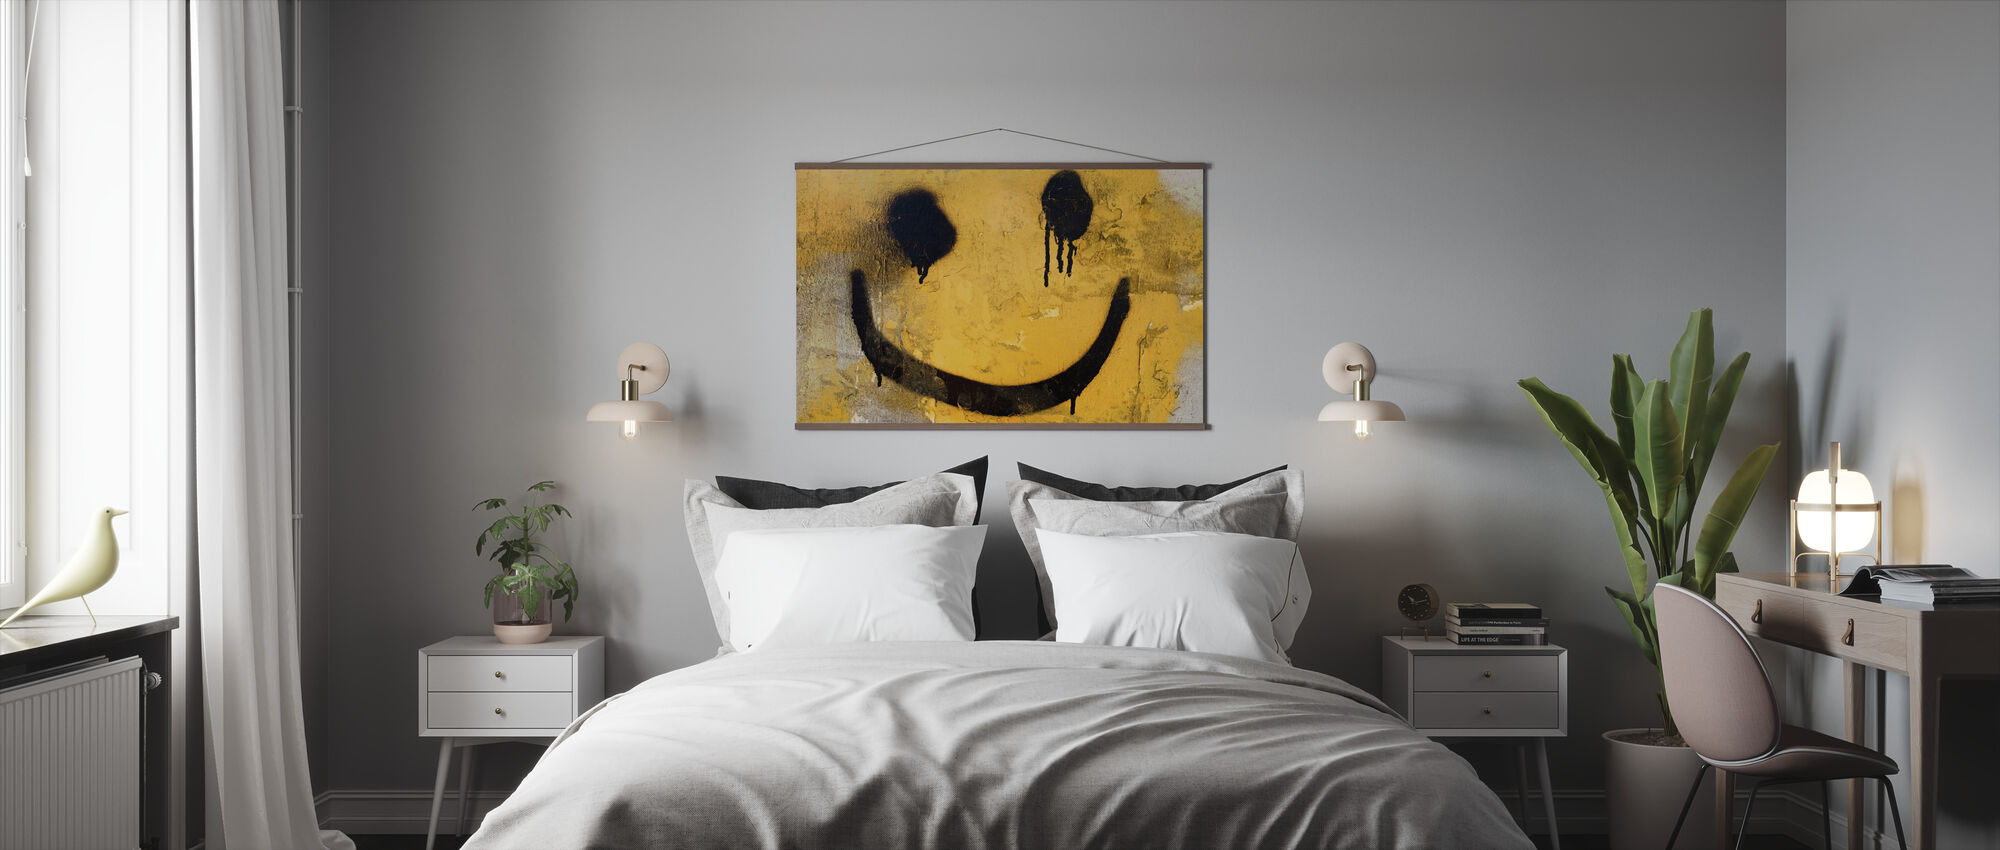 Smiley Face - Poster - Bedroom